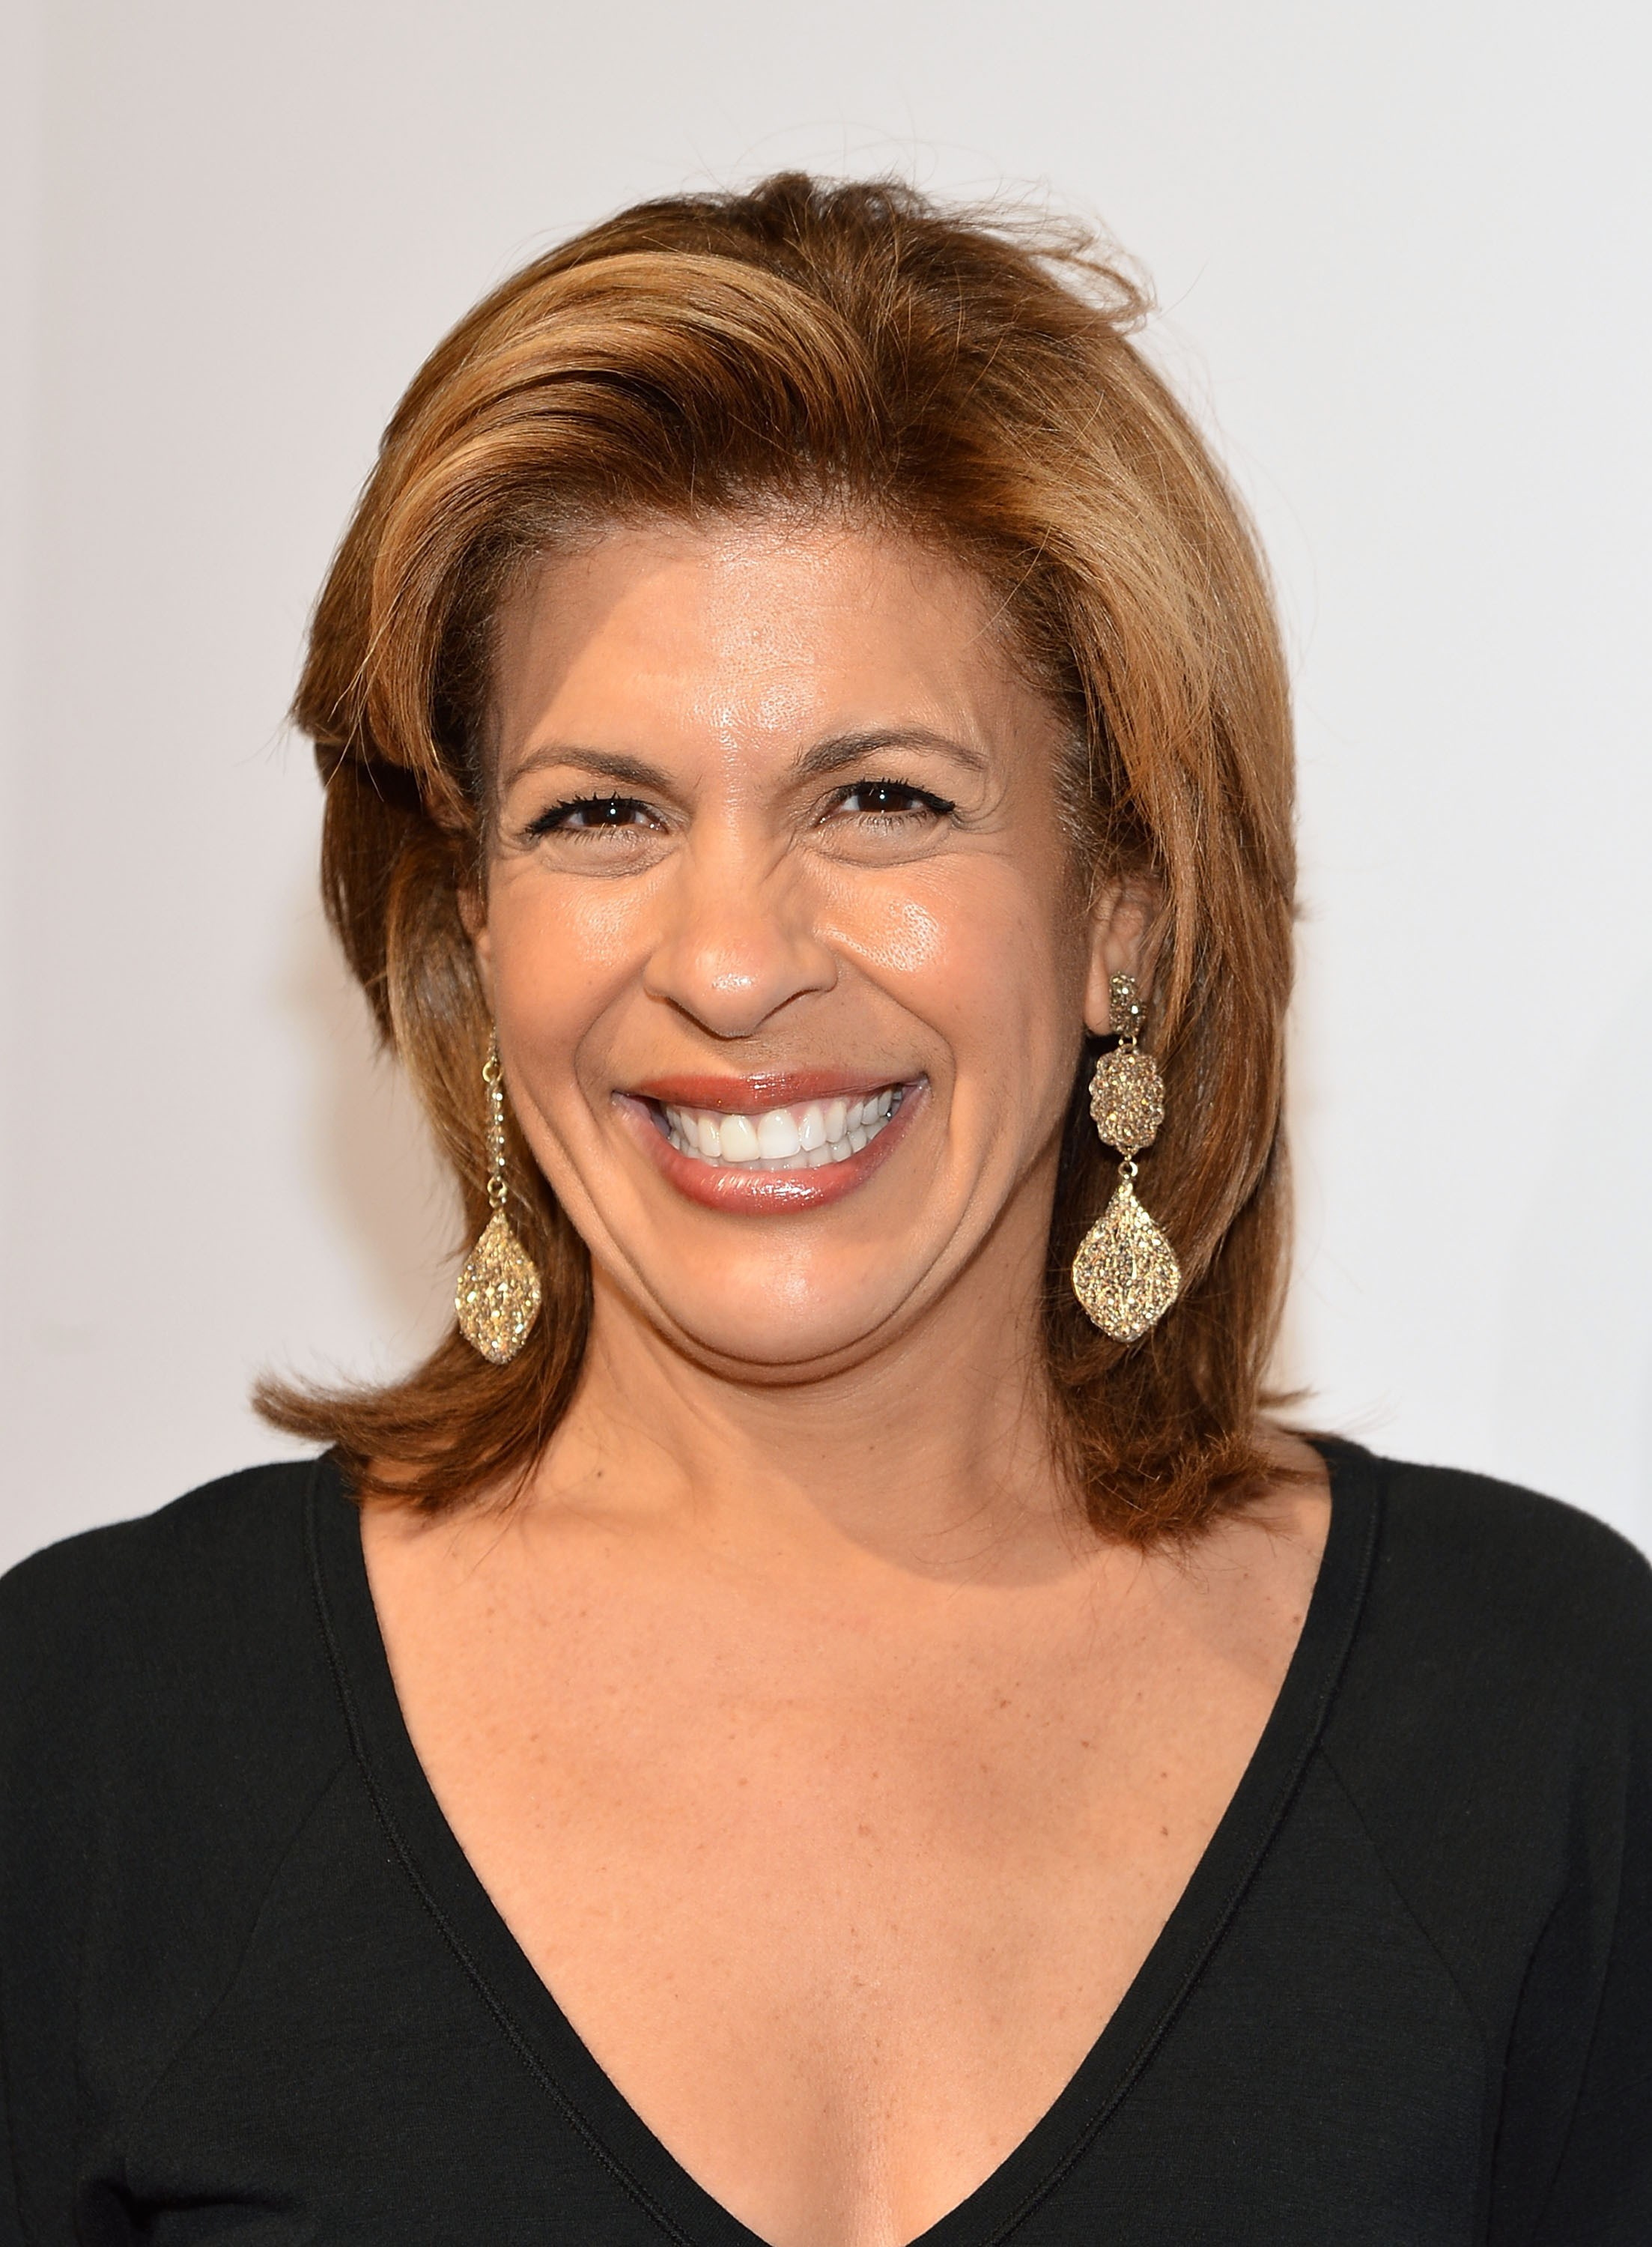 Hoda Kotb Known People Famous People News And Biographies